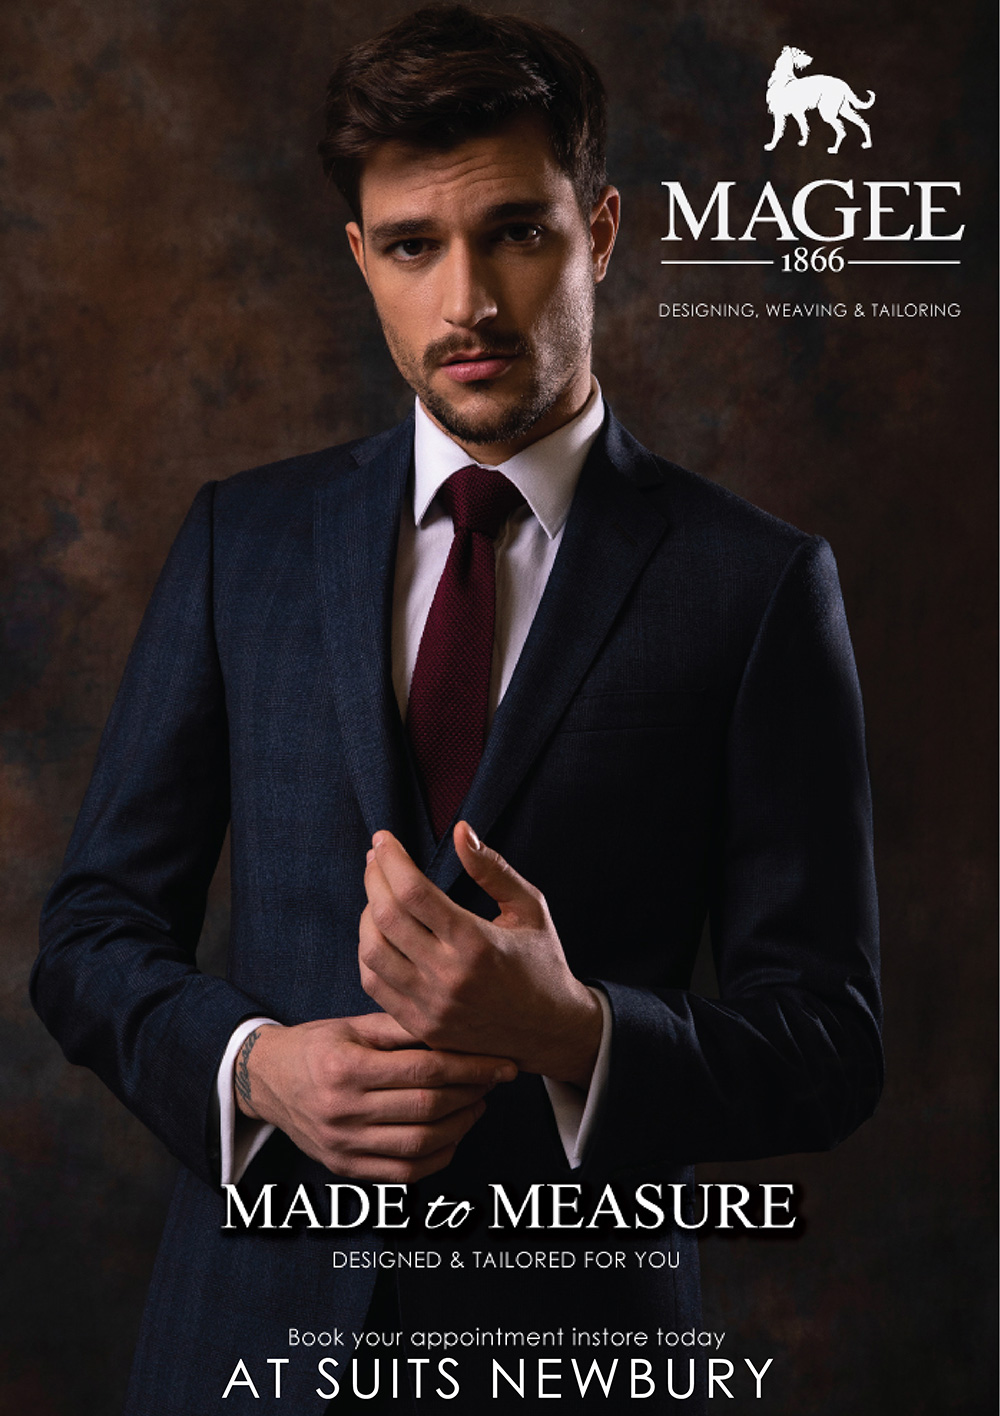 Tailoring Services - made to measure suits